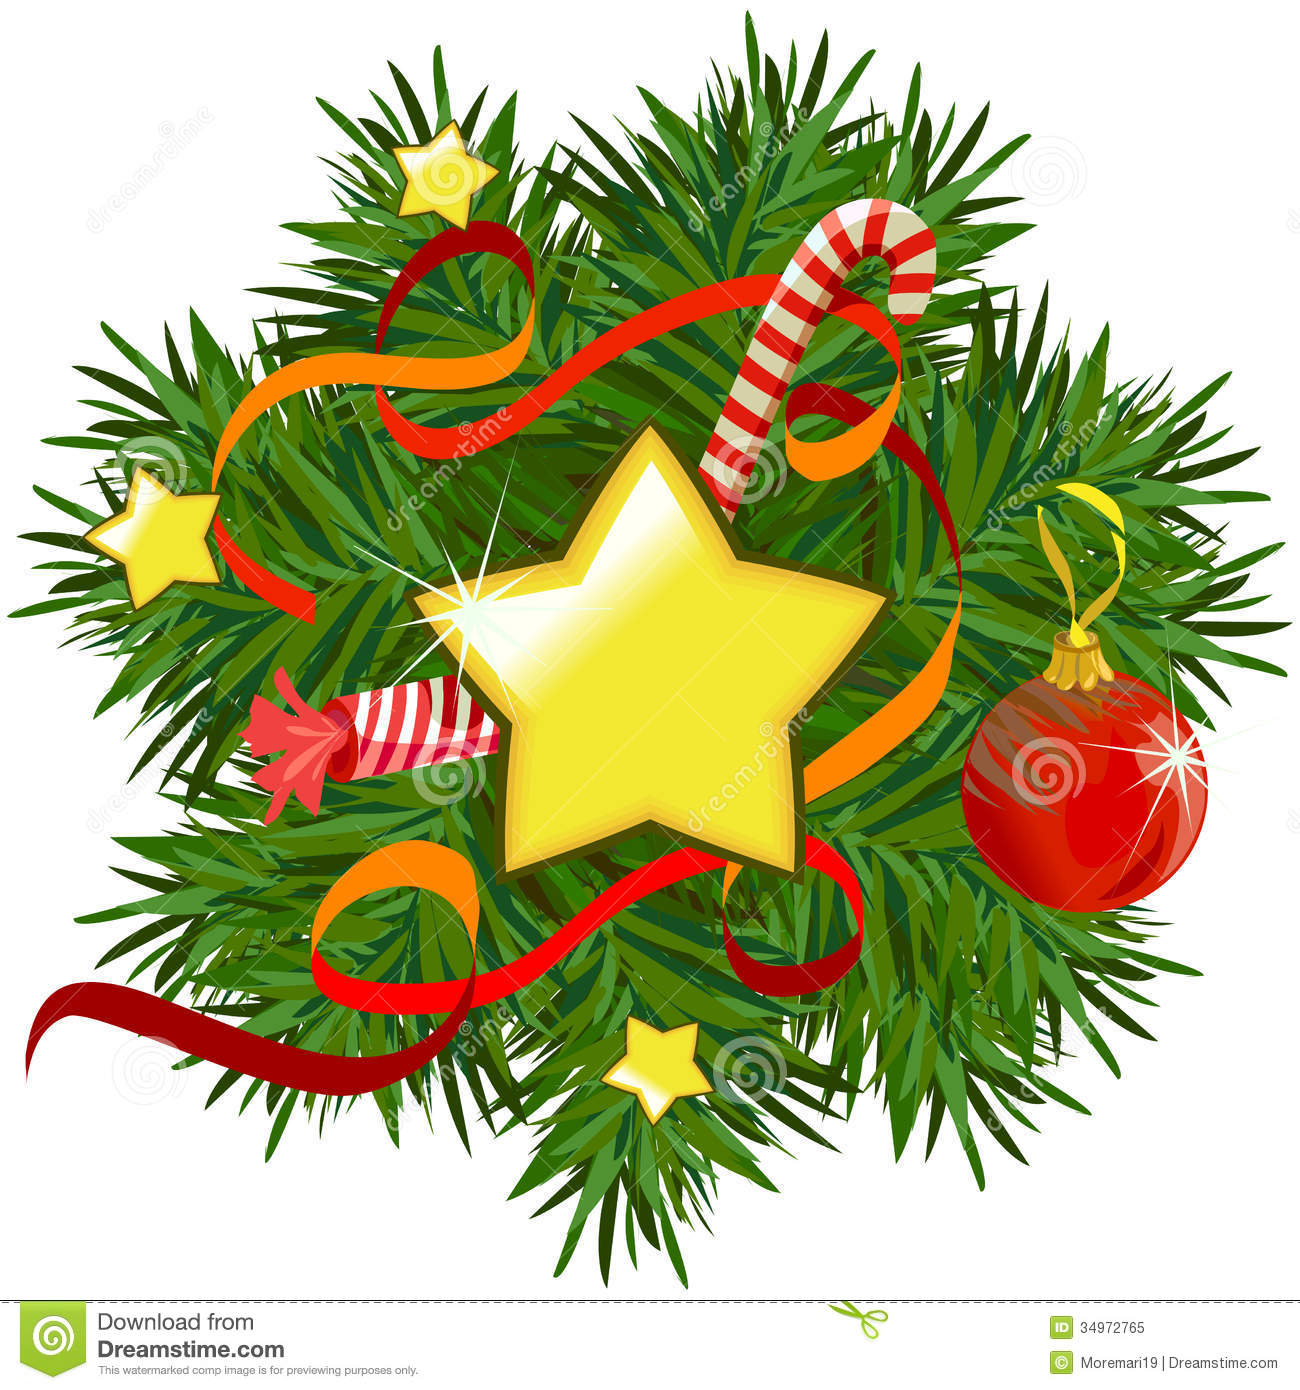 Christmas Wreath With Stars And Decorations Royalty Free